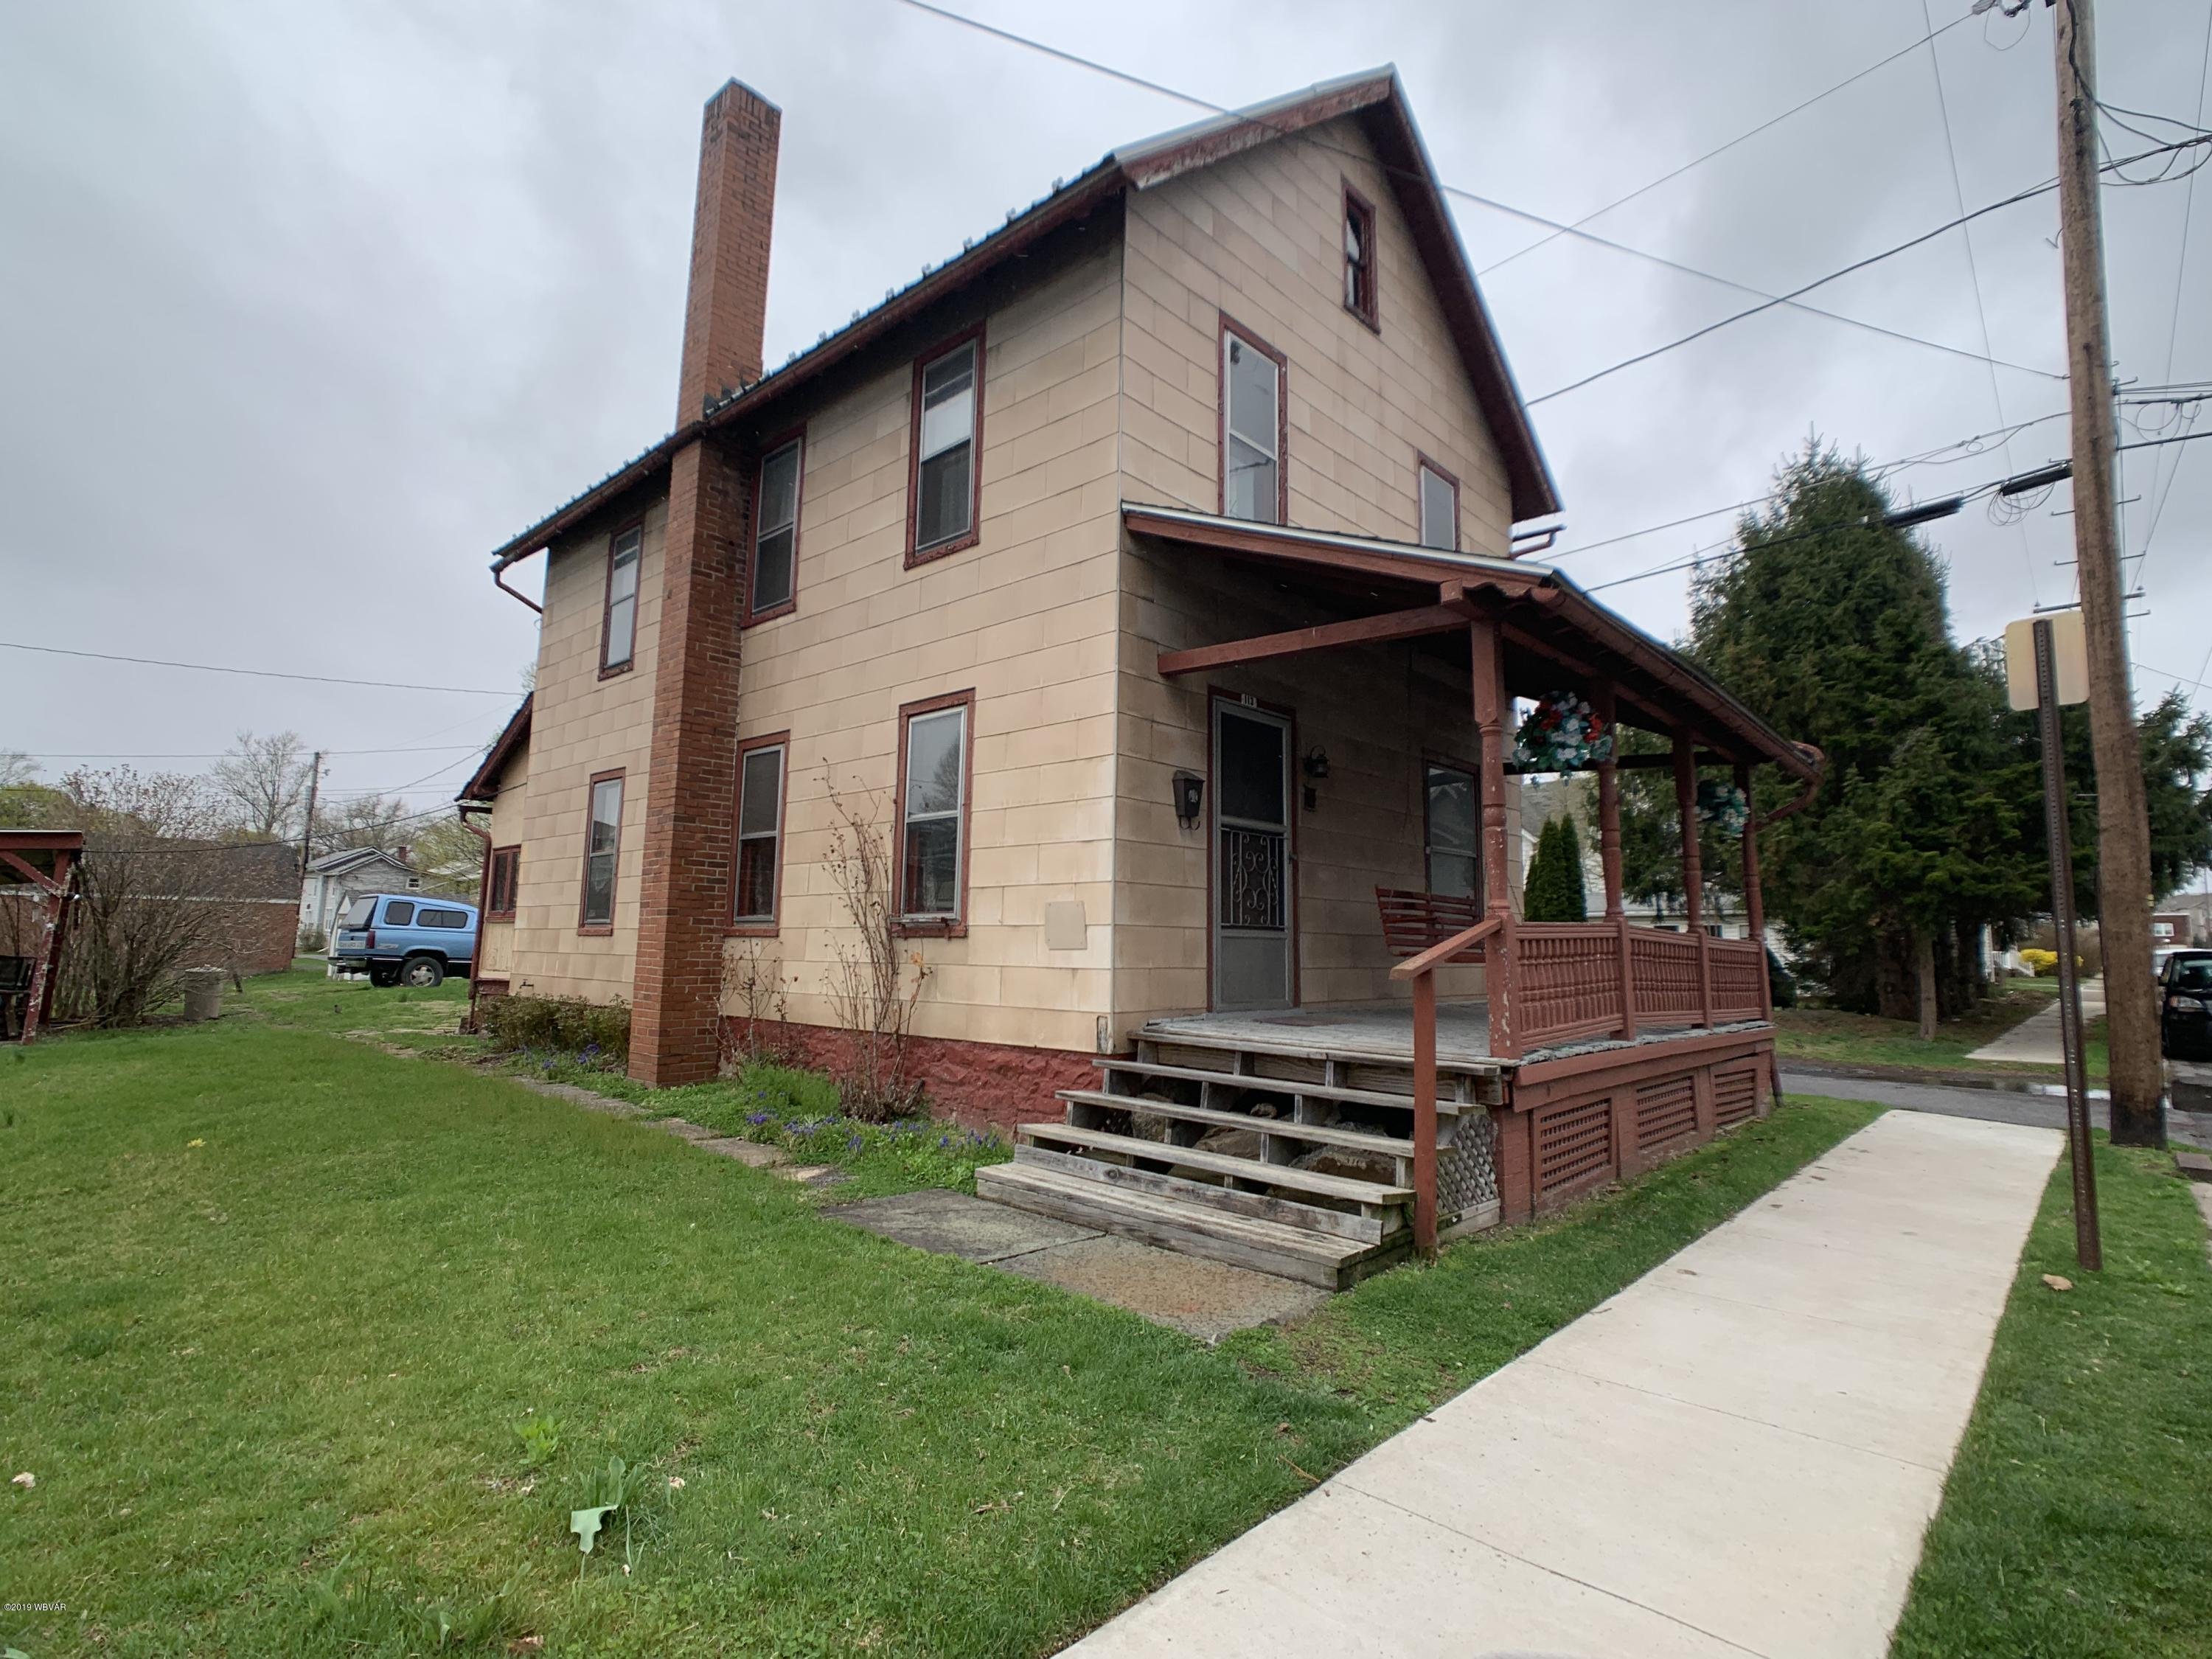 113 PARK STREET,Lock Haven,PA 17745,3 Bedrooms Bedrooms,1 BathroomBathrooms,Residential,PARK,WB-87004